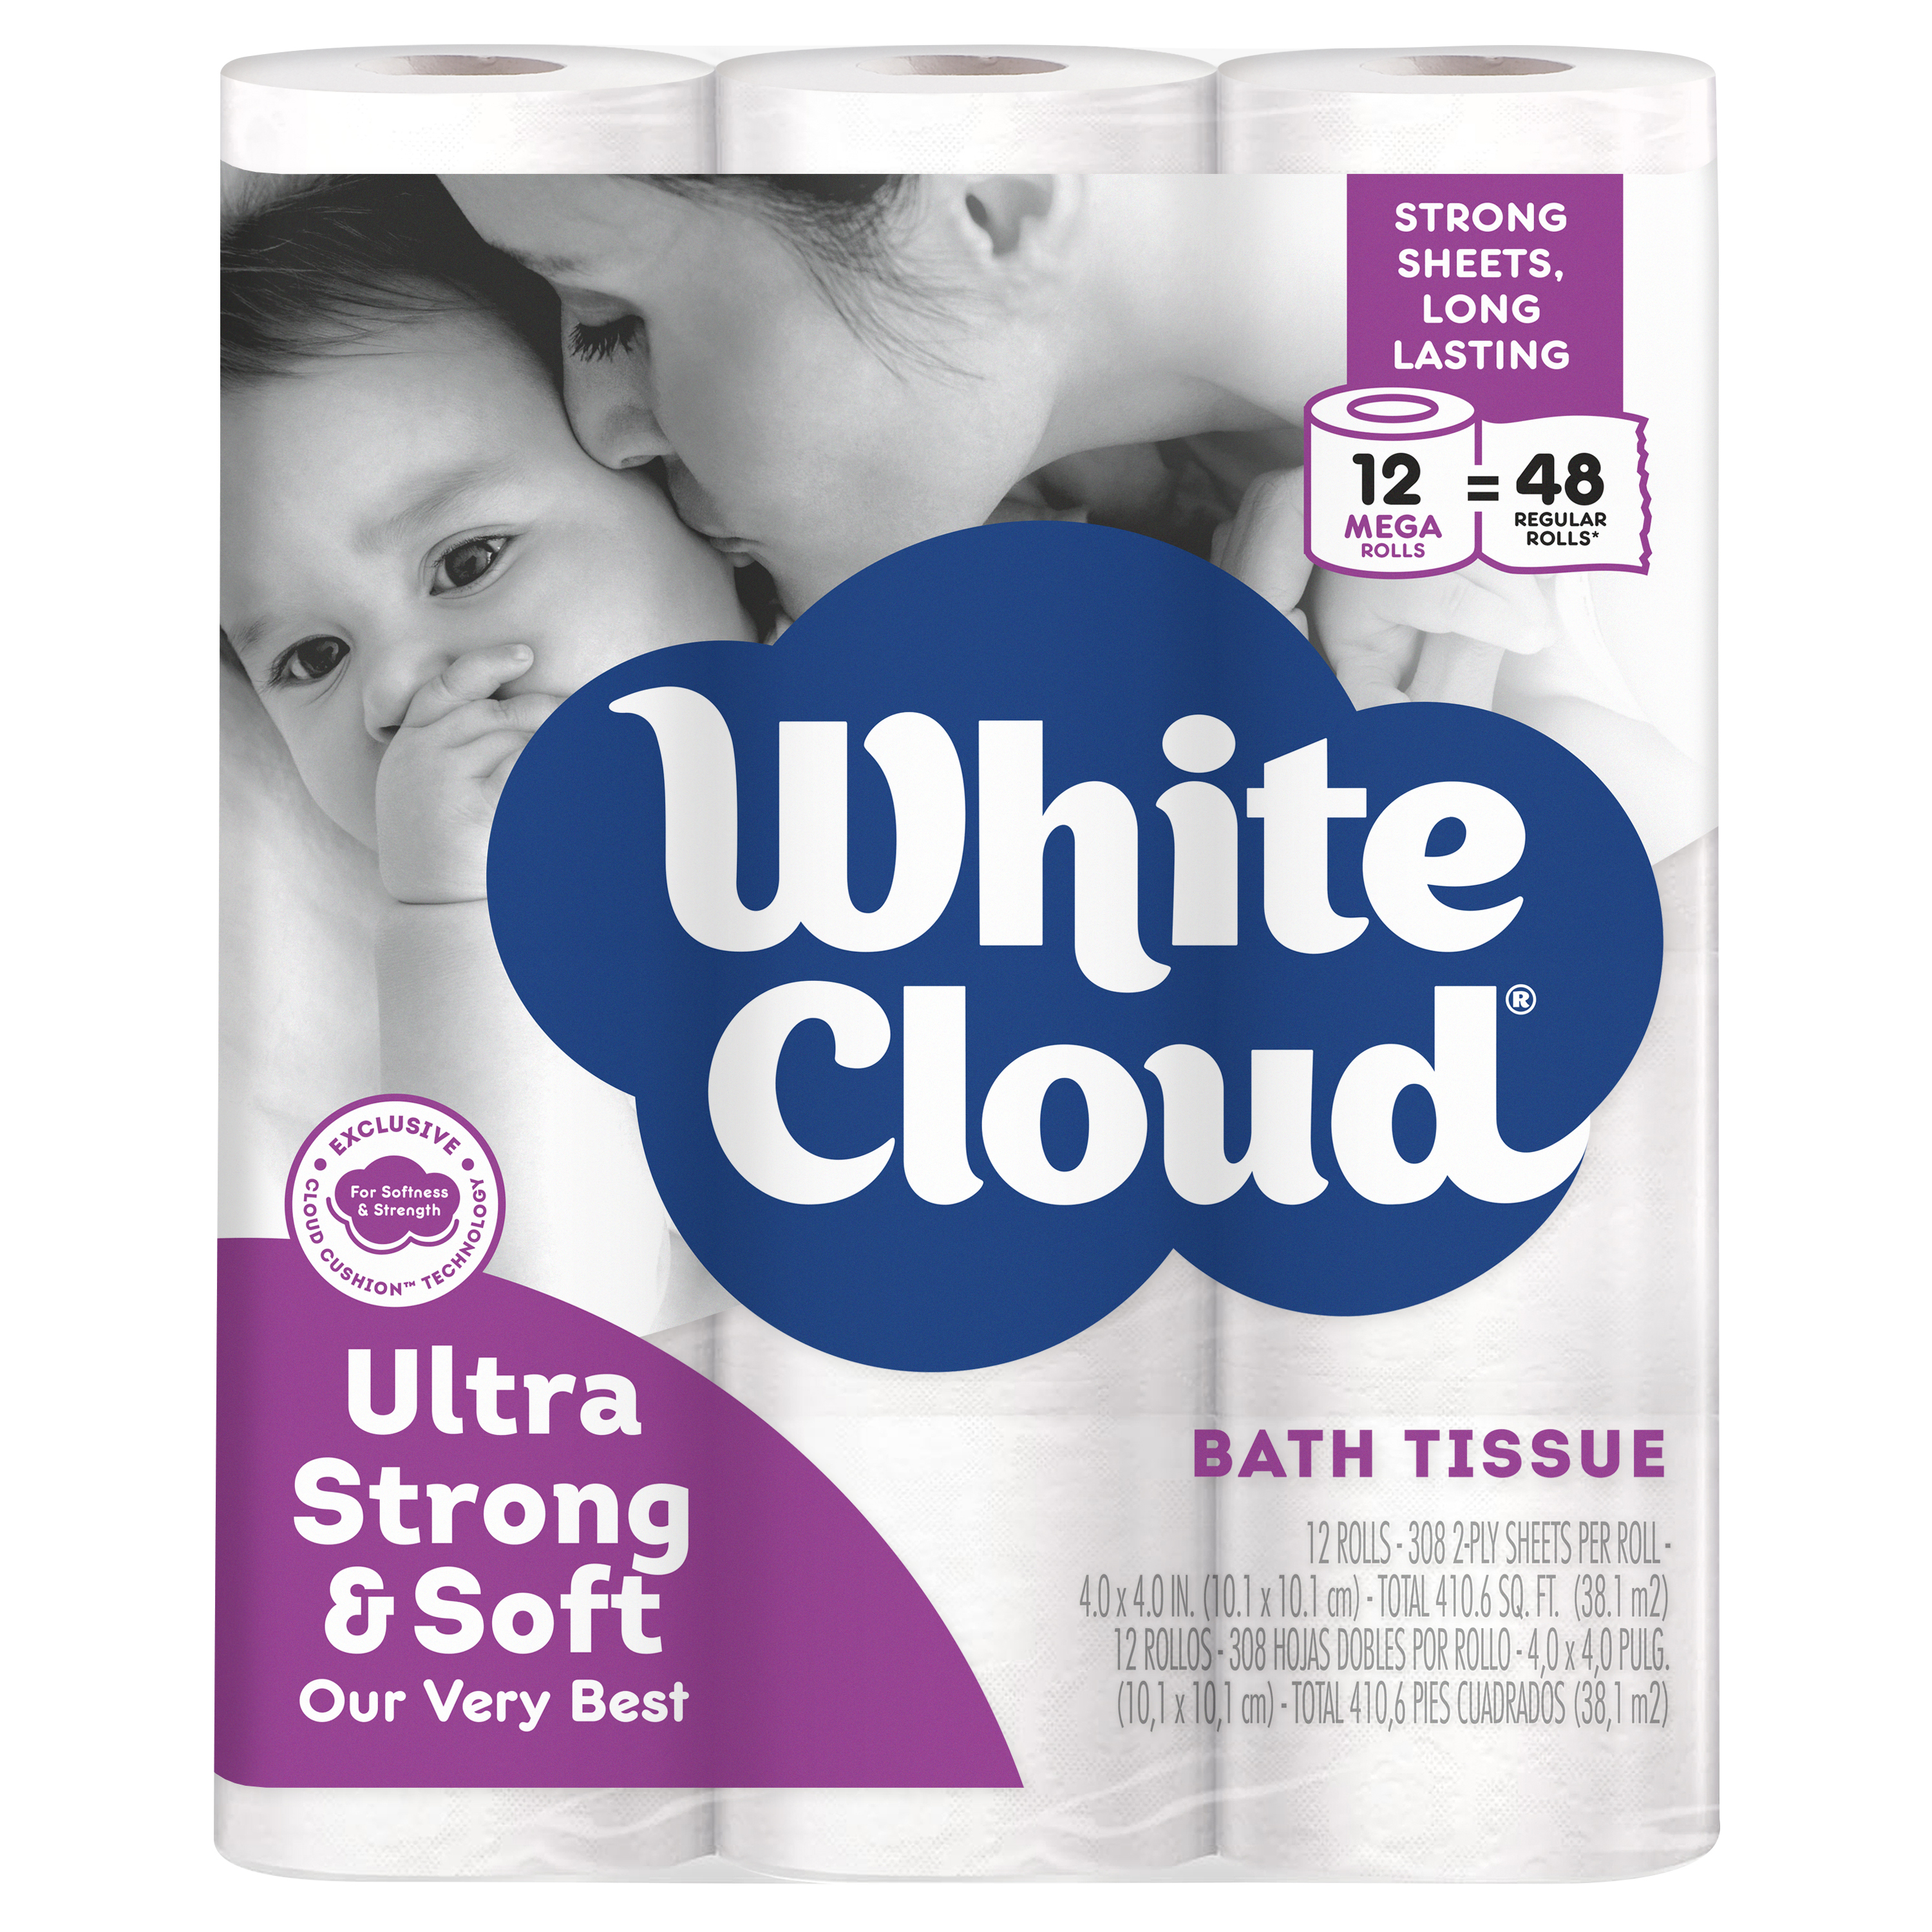 White Cloud Ultra Strong and Soft Bath Tissue 330 Sheets, 12 Rolls ...